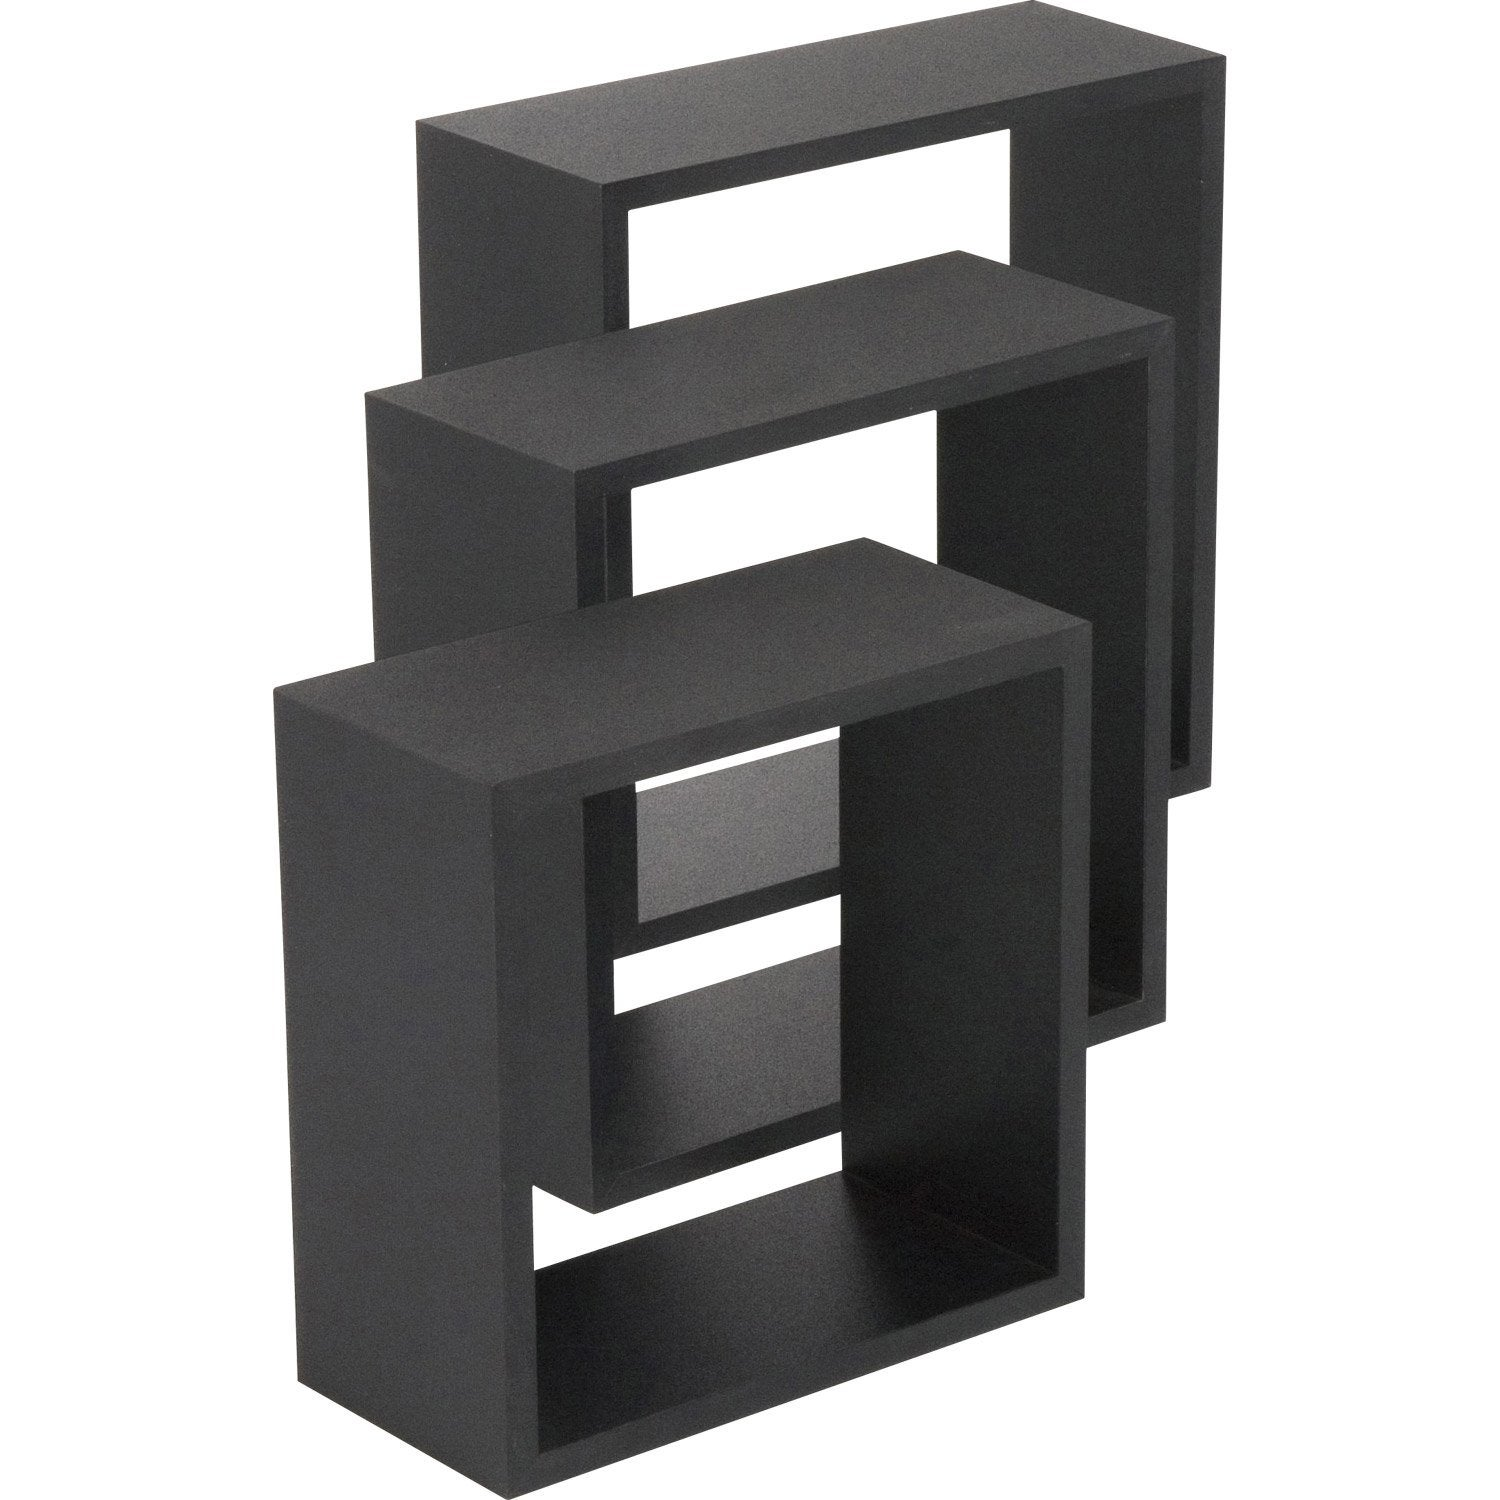 etag re 3 cubes noir x cm mm leroy merlin. Black Bedroom Furniture Sets. Home Design Ideas